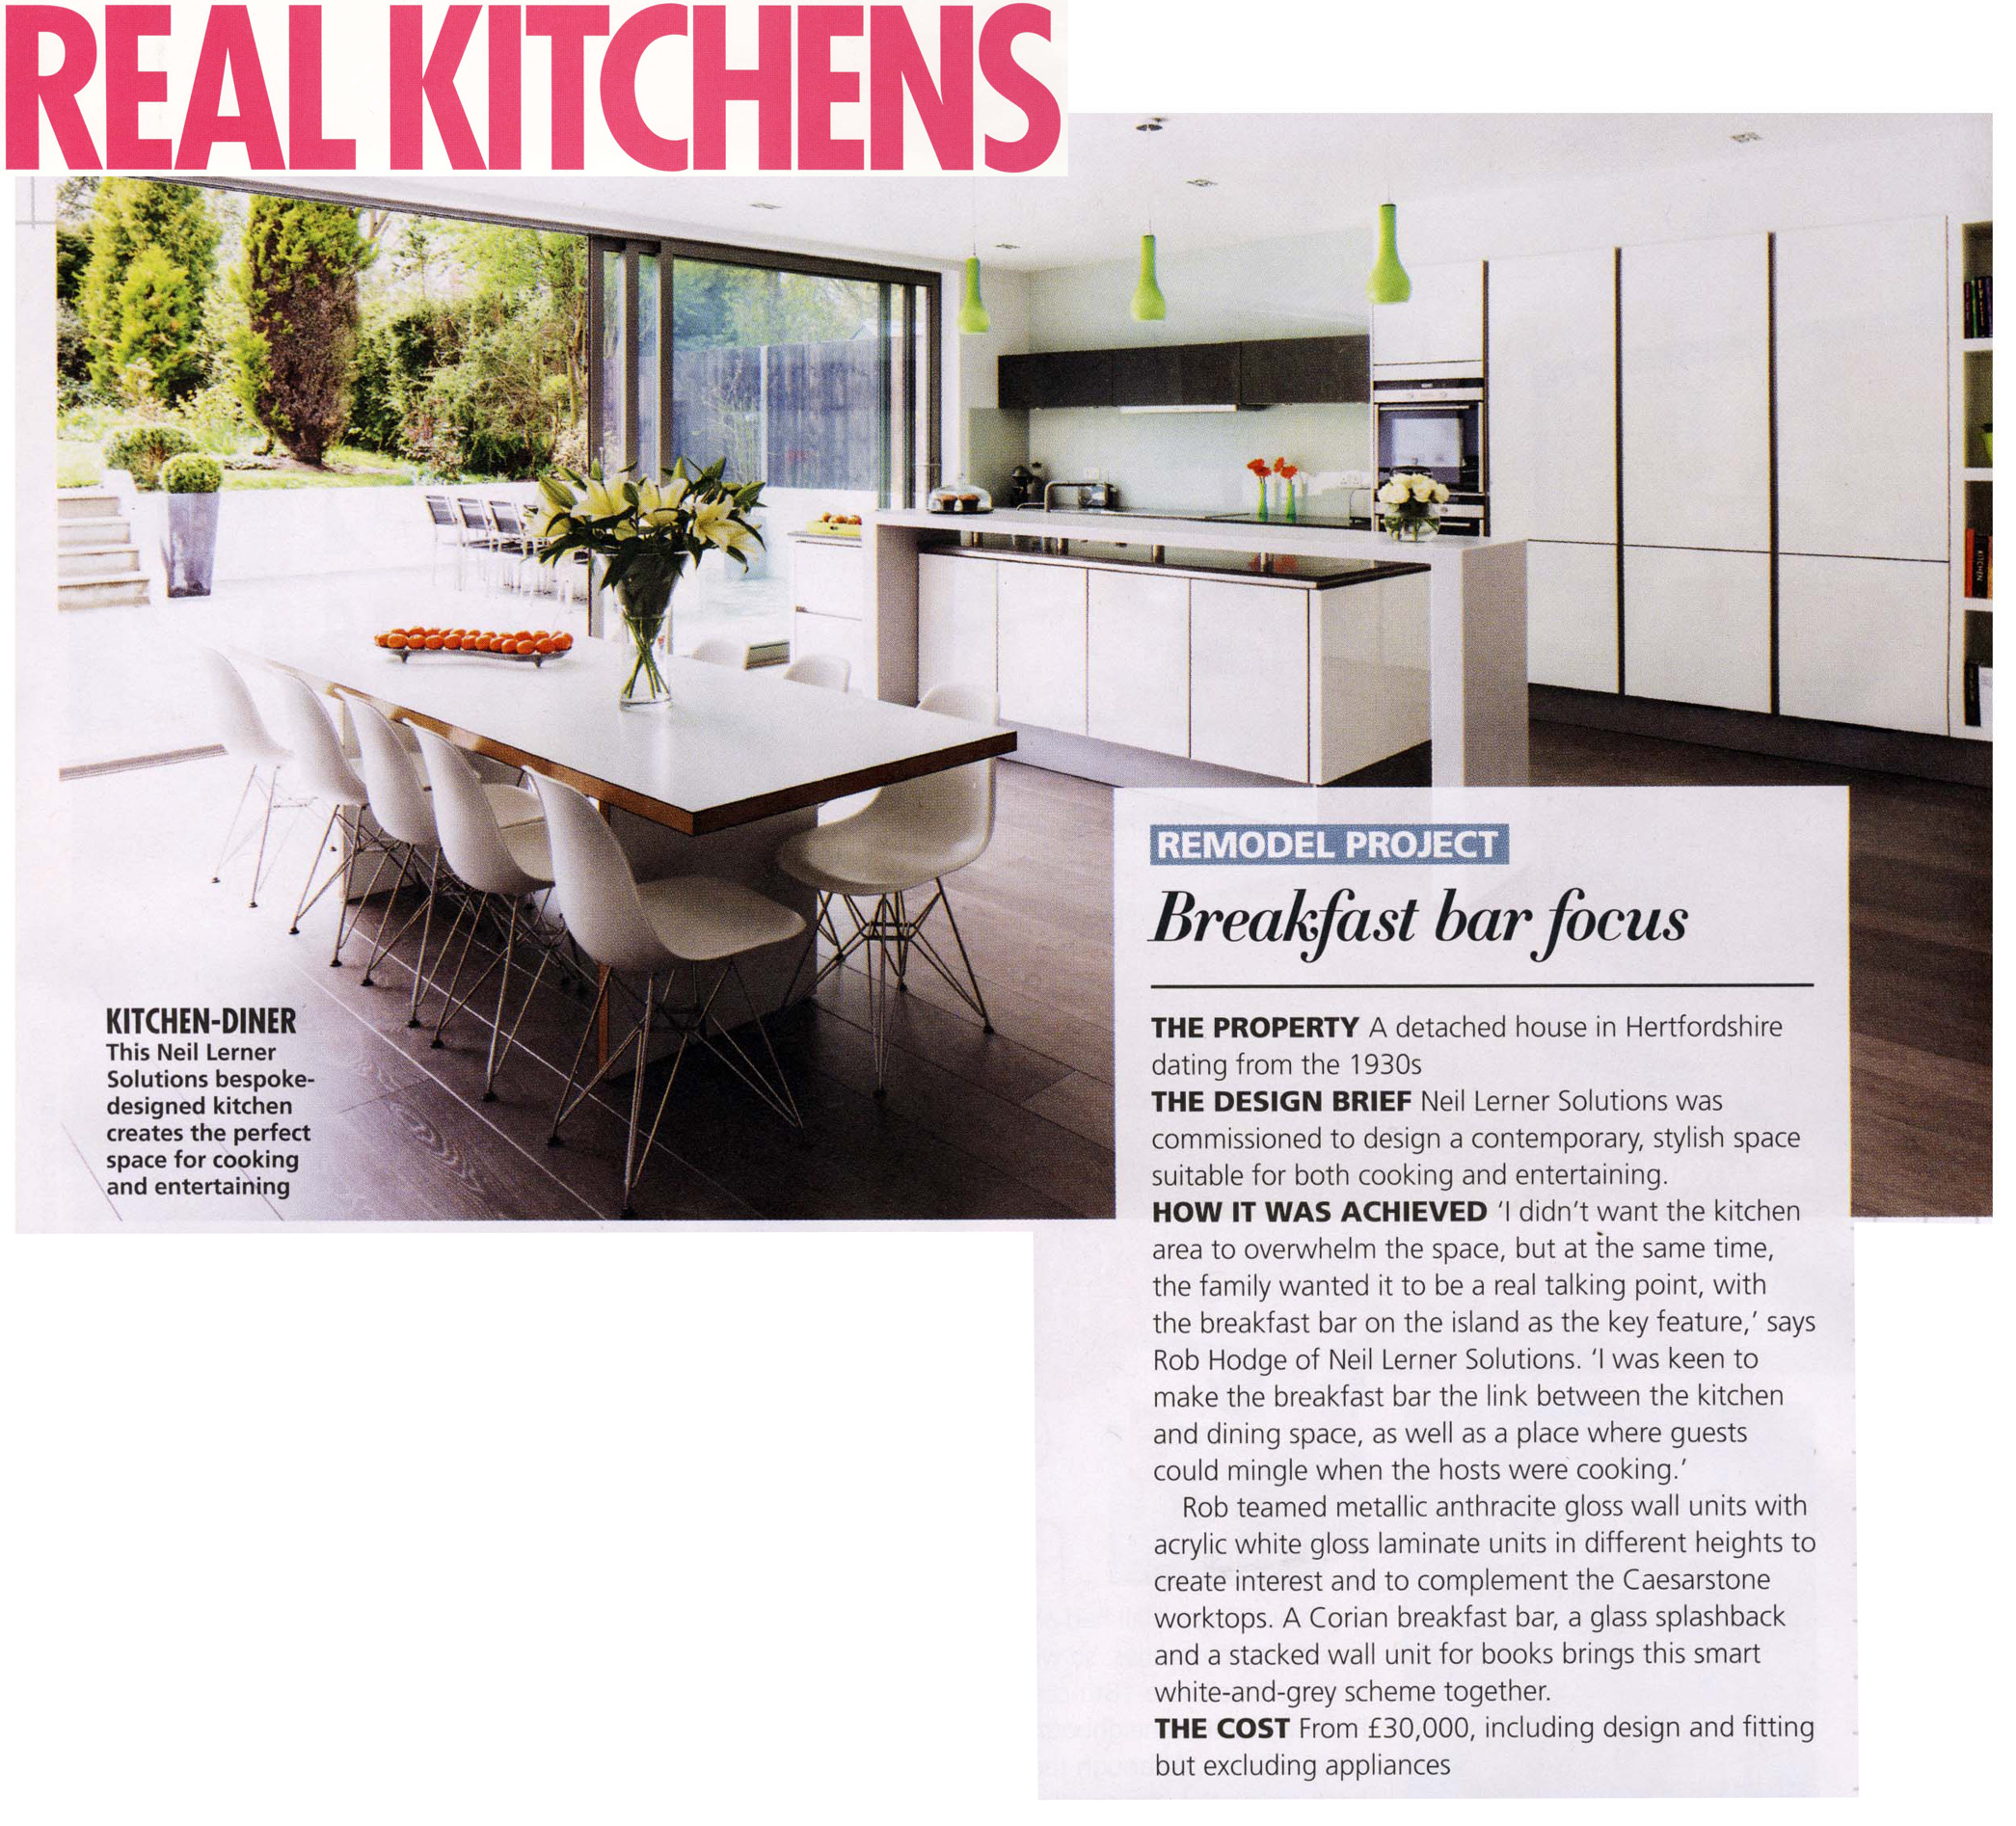 New Modern Kitchens At Neil Lerner: The Beauty Of The Breakfast Bar